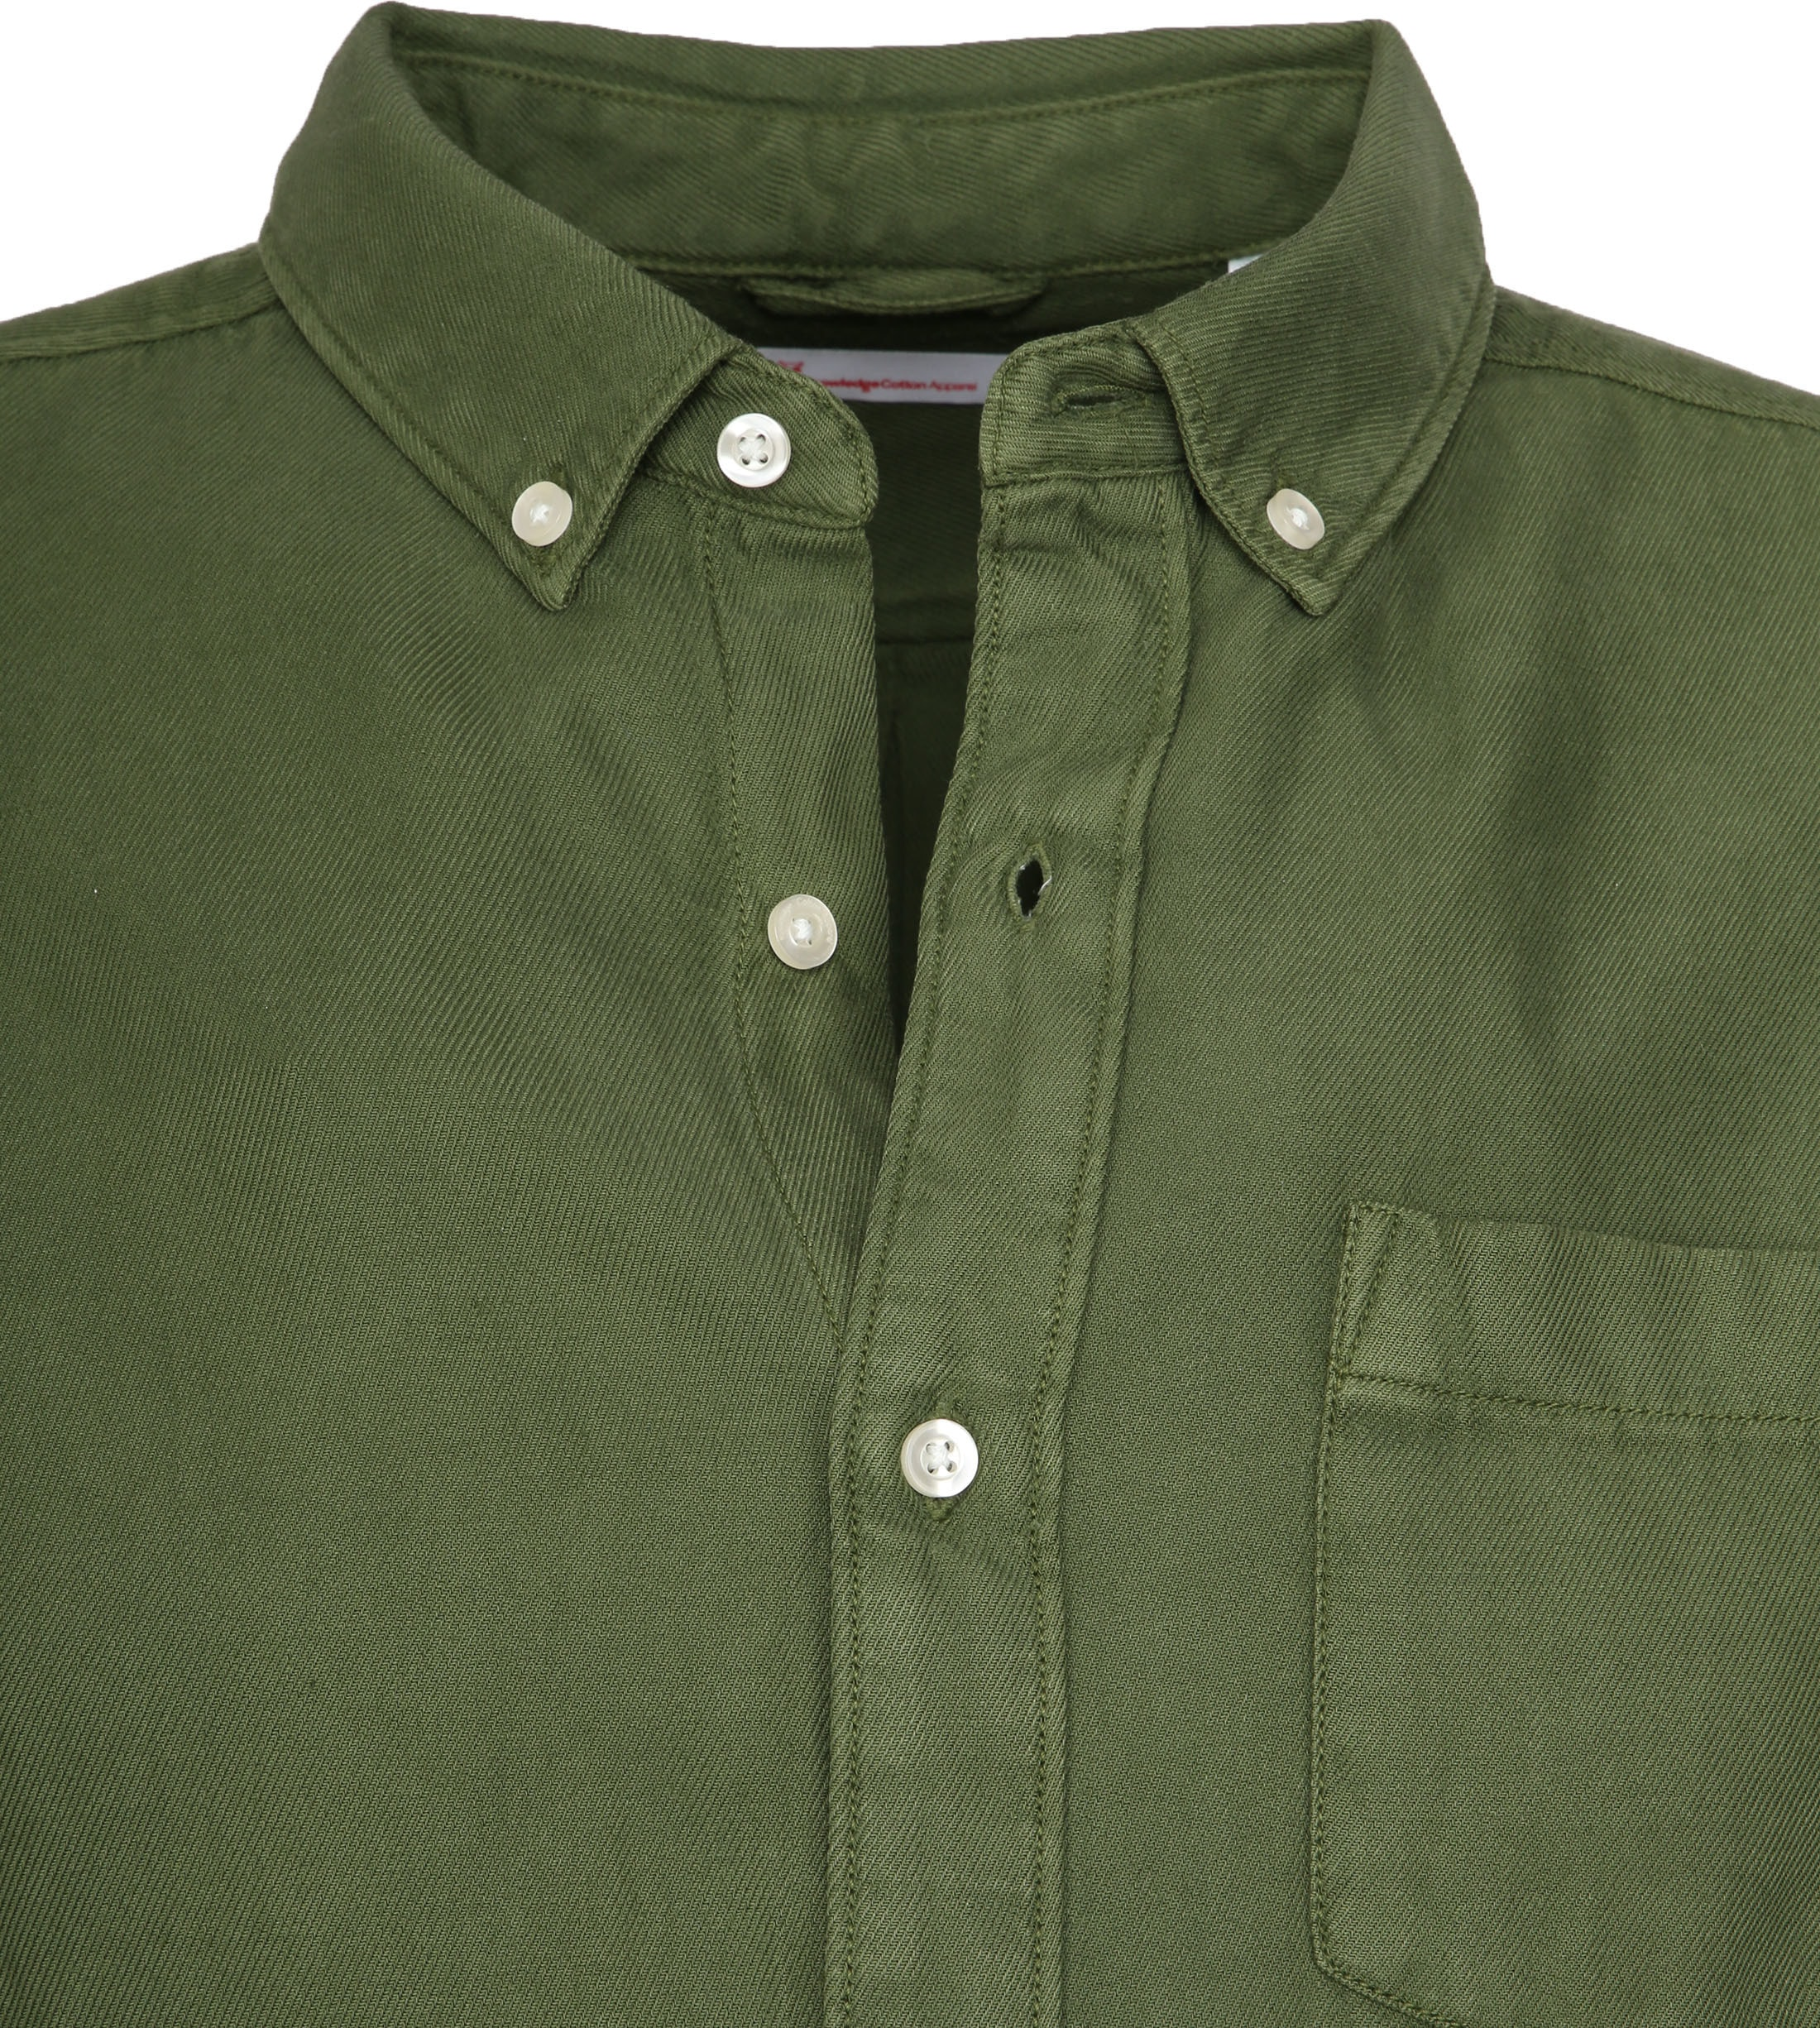 KnowledgeCotton Apparel Overhemd Twill Groen foto 1